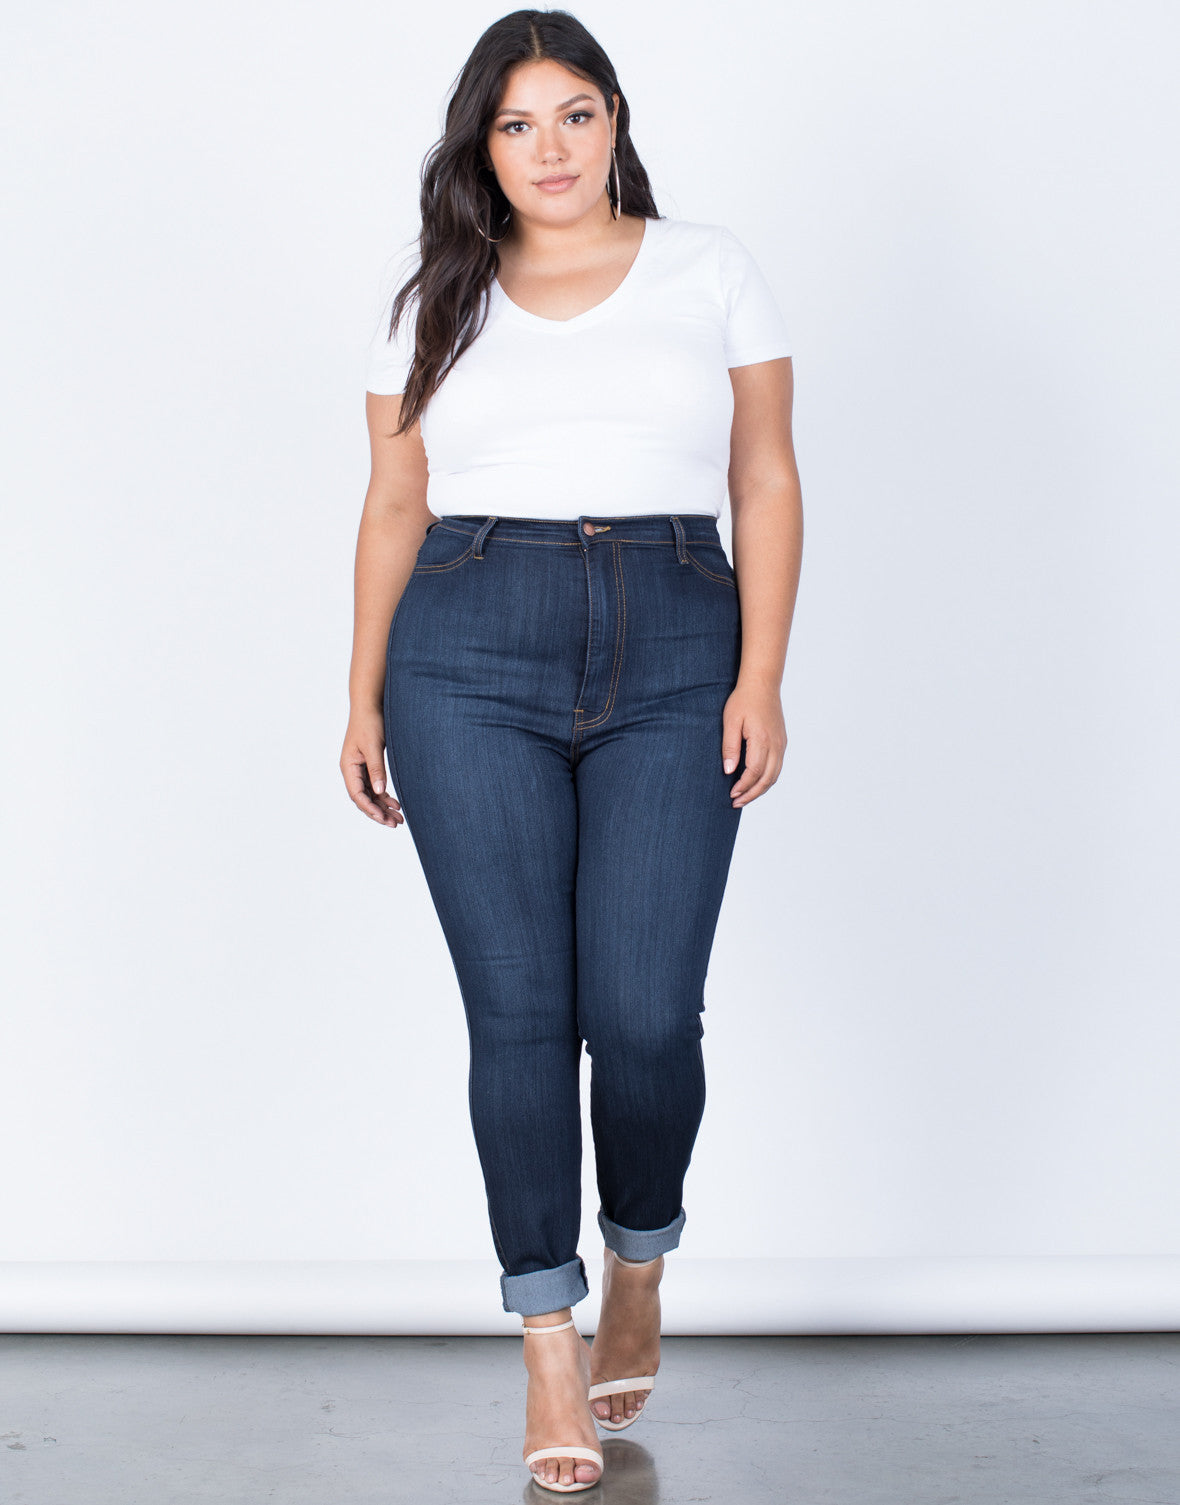 Jul 25,  · Levis Levi's is one of several retailers creating quality denim jeans and shorts for plus-size shoppers. Check out their selection. Clothing sizes are basically pointless.